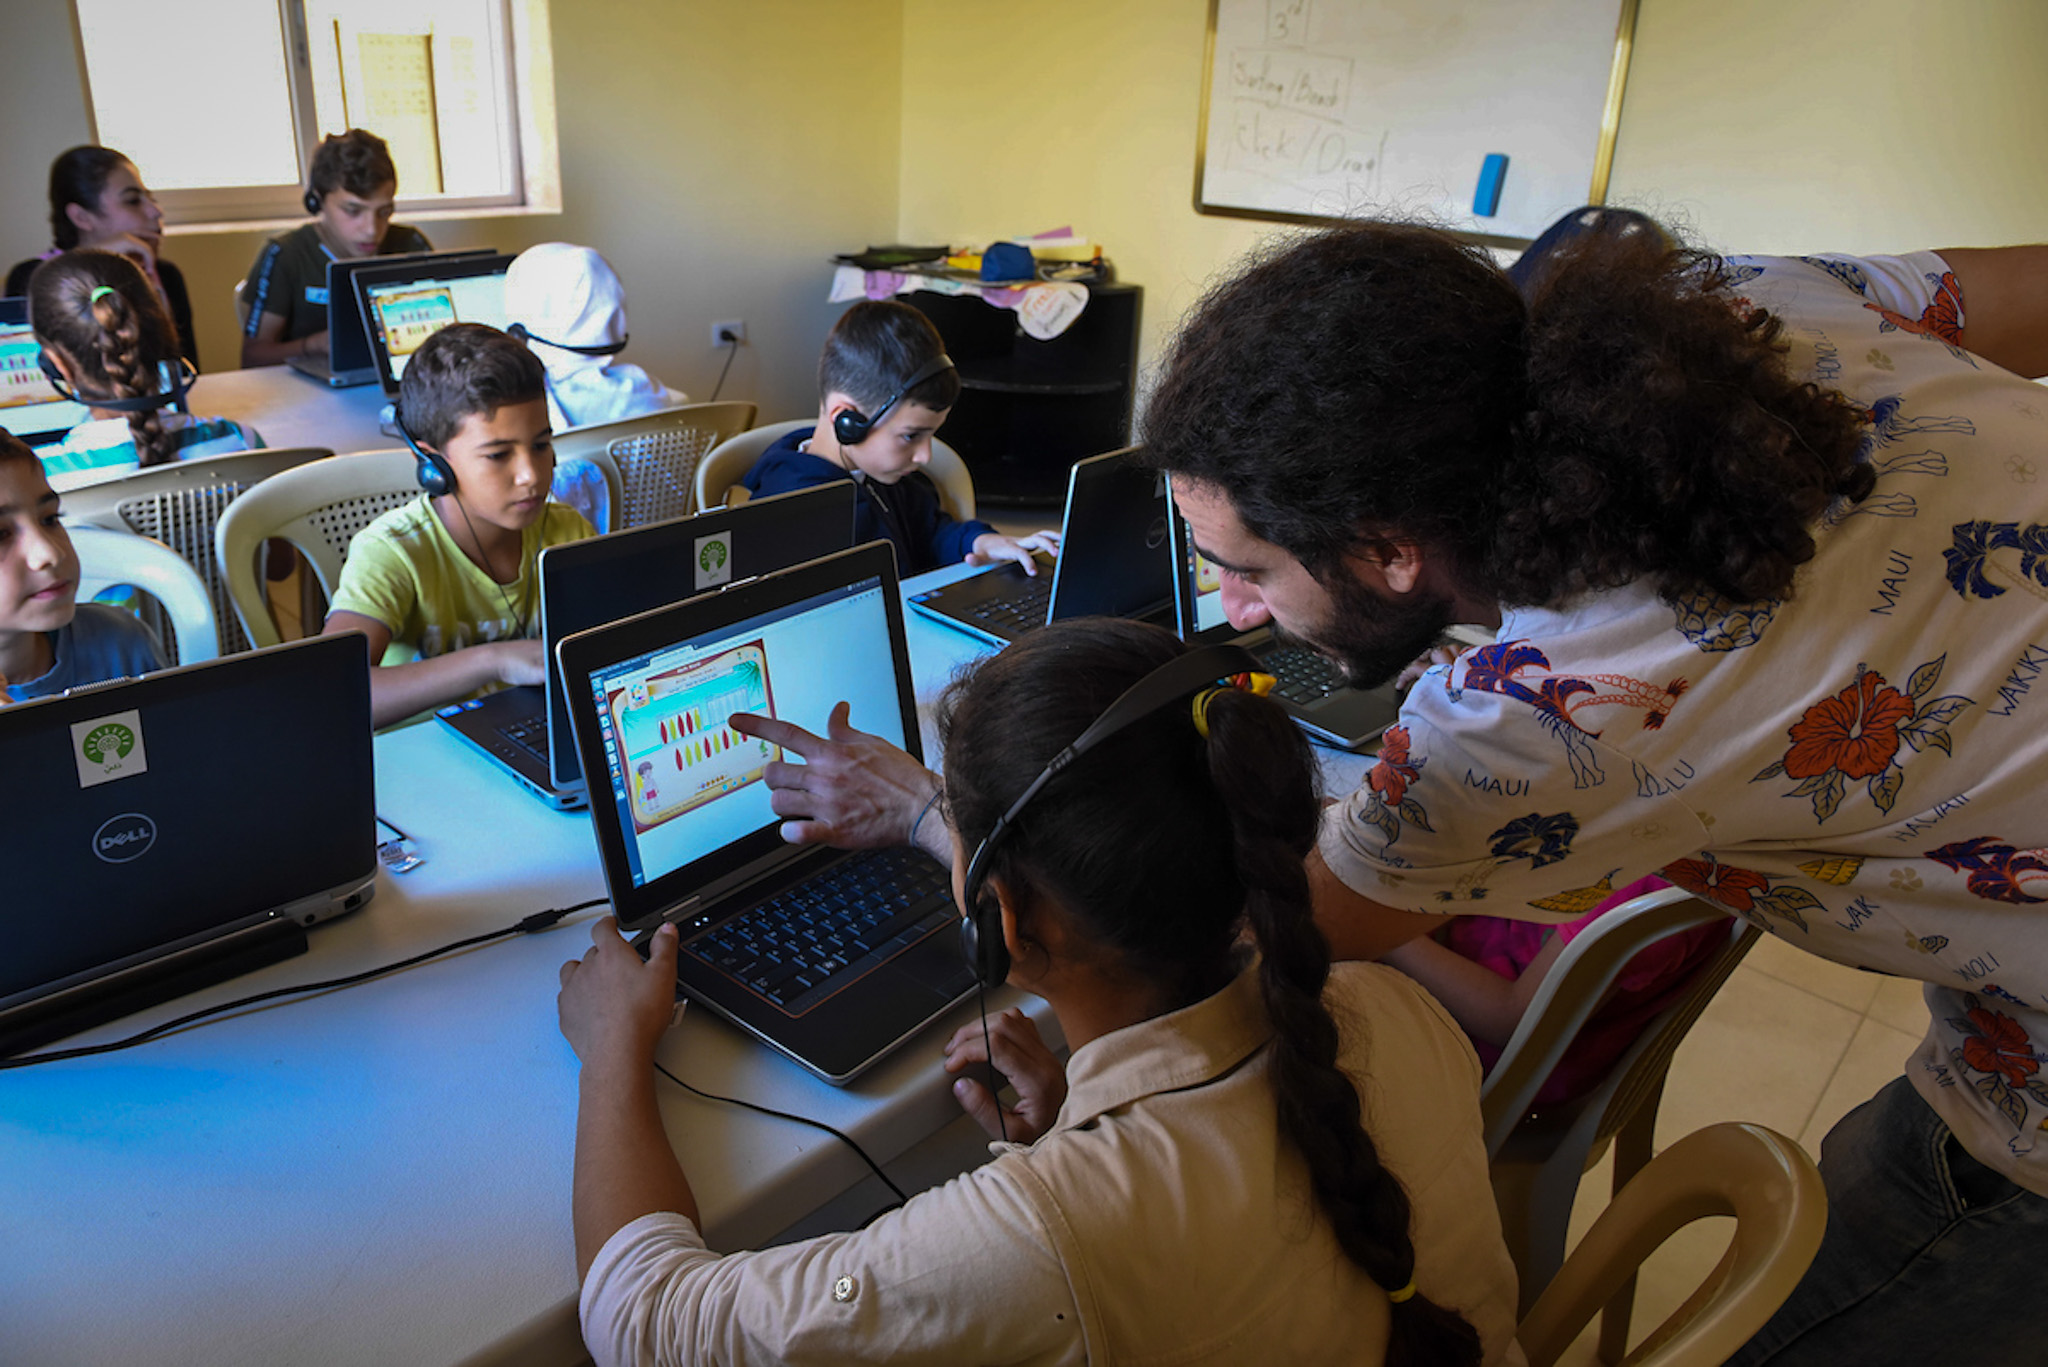 The Role of Digital Literacy and the Non-formal Education Sector in Lebanon's Refugee Population